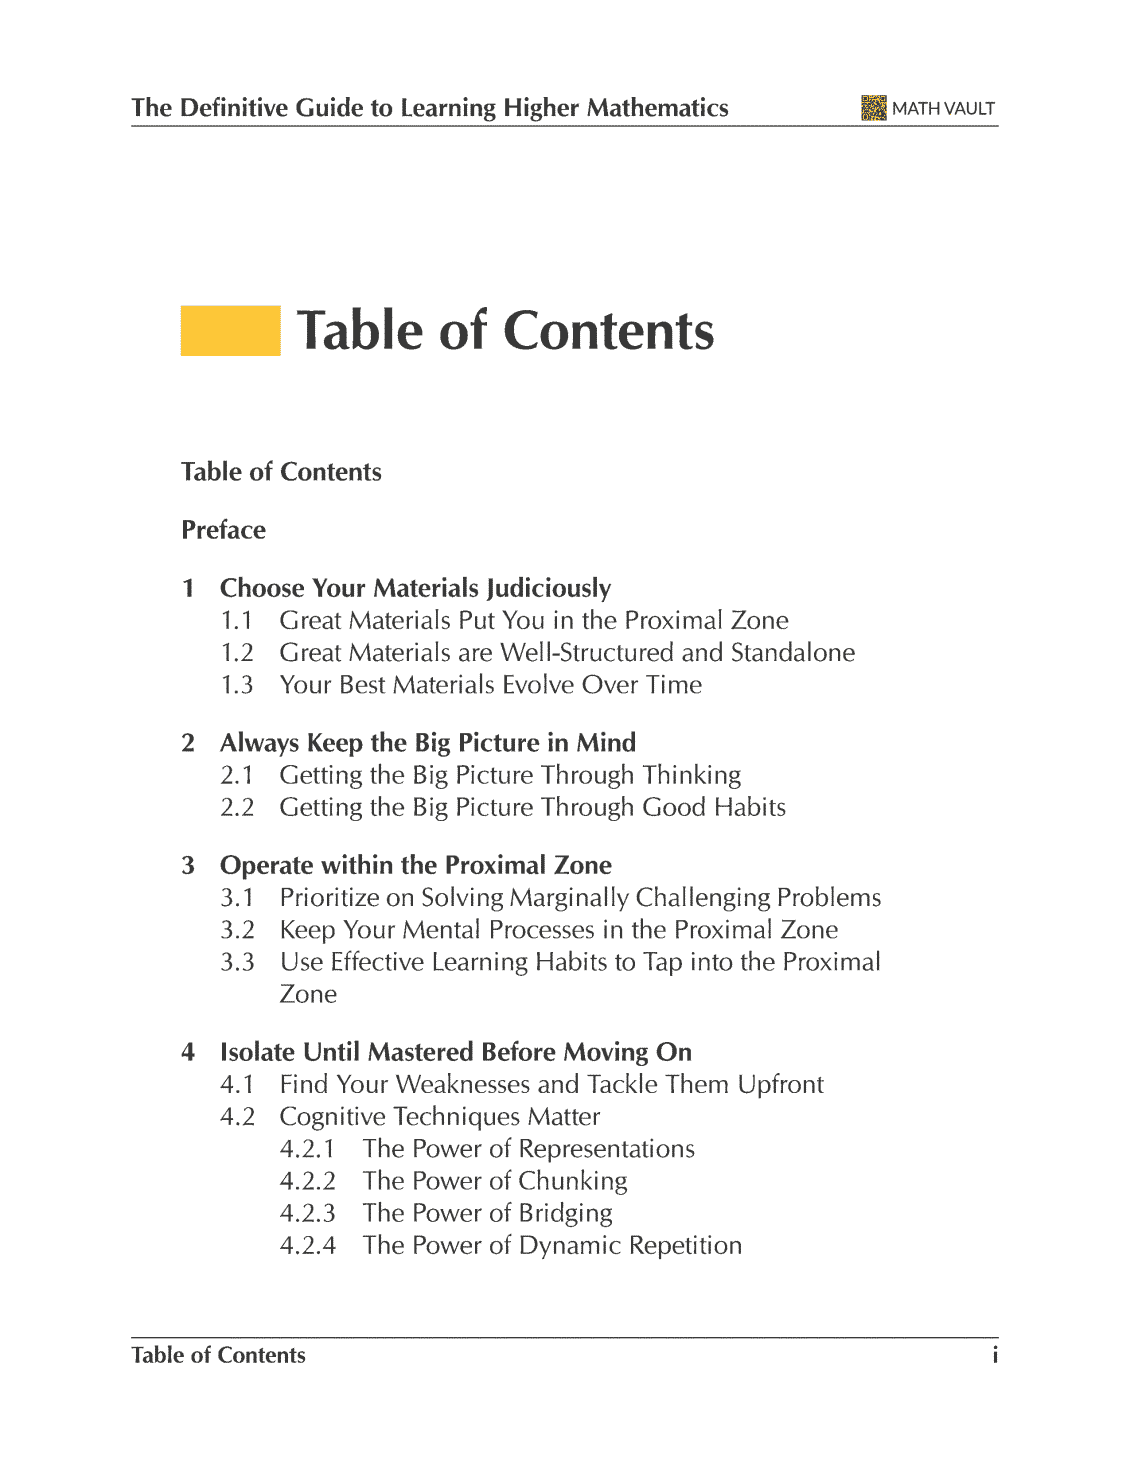 Table of contents (page 1) from Math Vault's The Definitive Guide to Learning Higher Mathematics